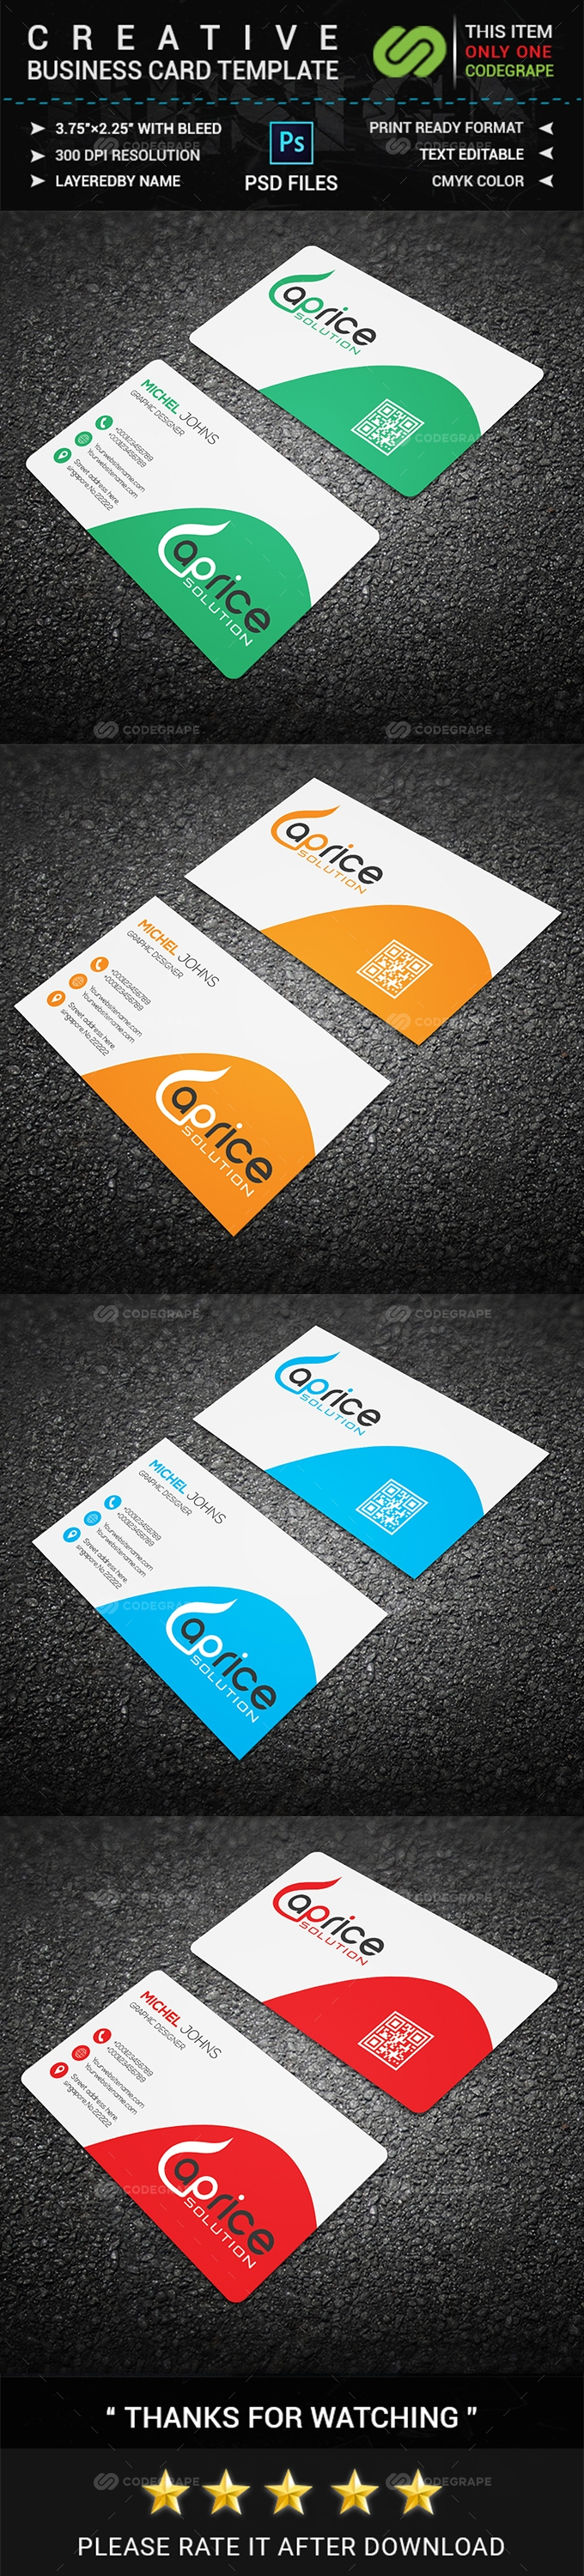 Creative Business Card 02